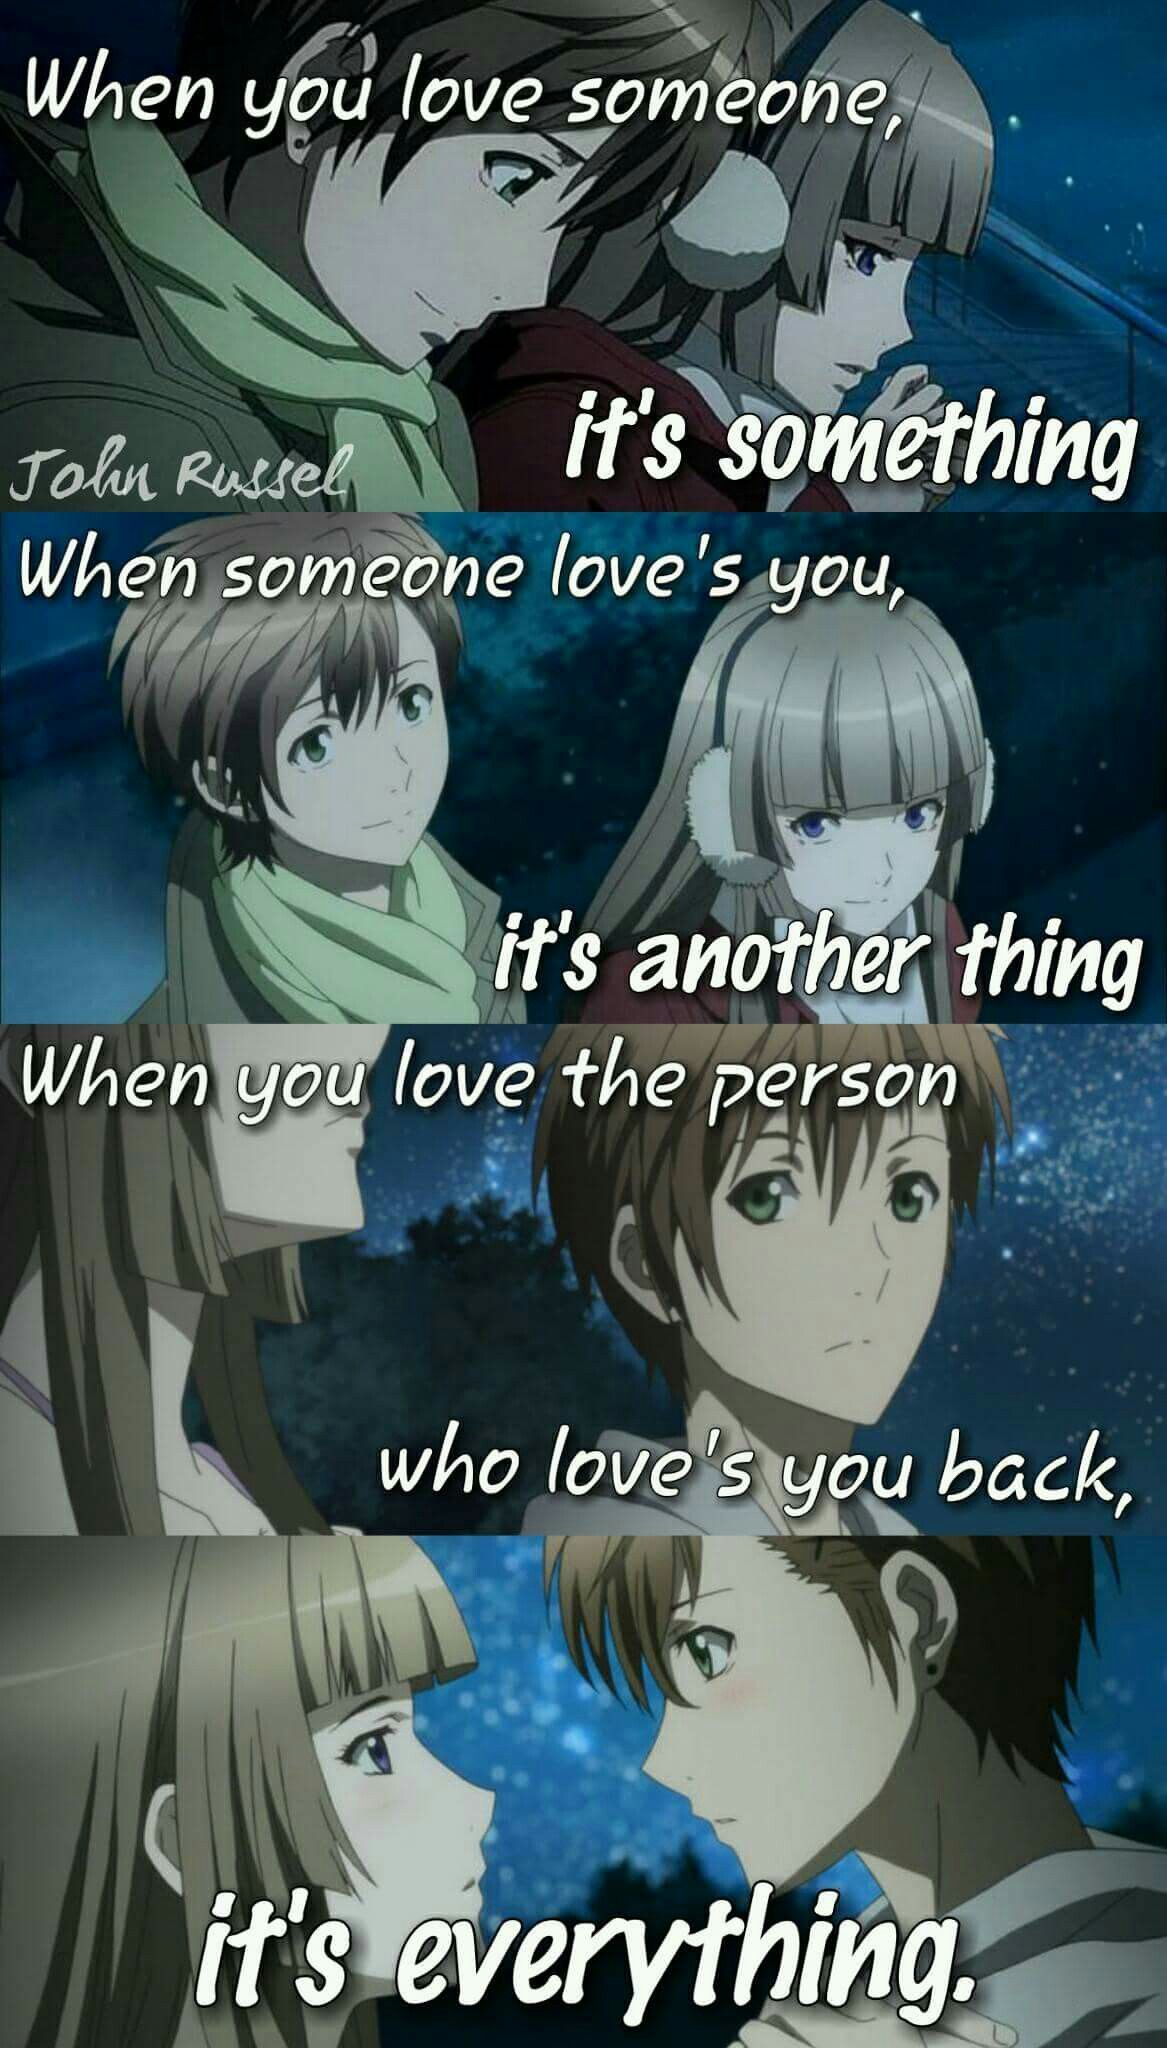 Romantic Anime Quotes : romantic, anime, quotes, Anime, Quote, Quotes,, Loving, Someone, Dreams, Quotes